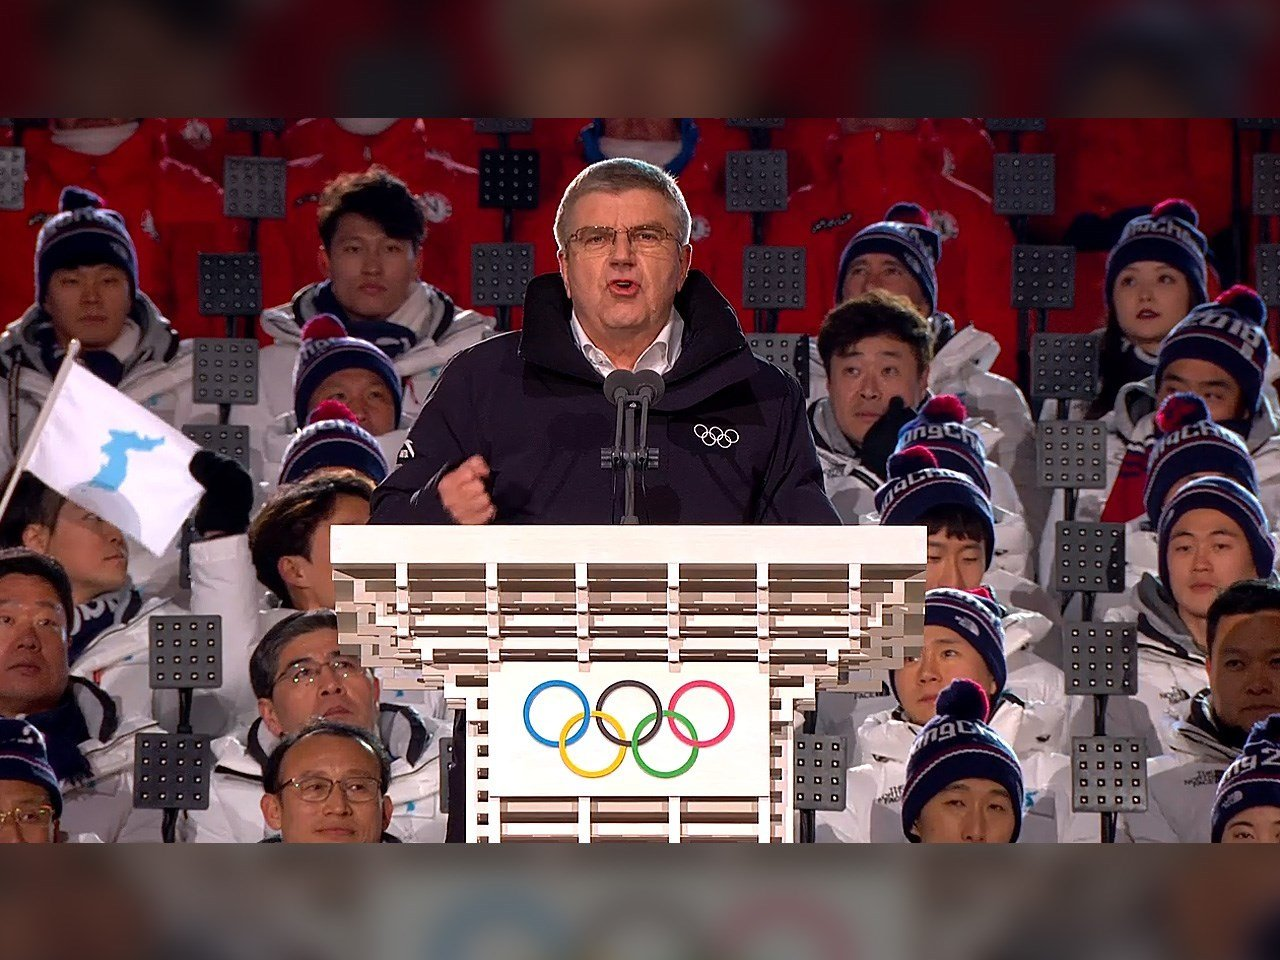 Thomas Bach - President of the International Olympic Committee speaking at the 2018 Winter Olympics Opening Ceremony in PyeongChang South Korea. Behind him is the Unified Korean Team.